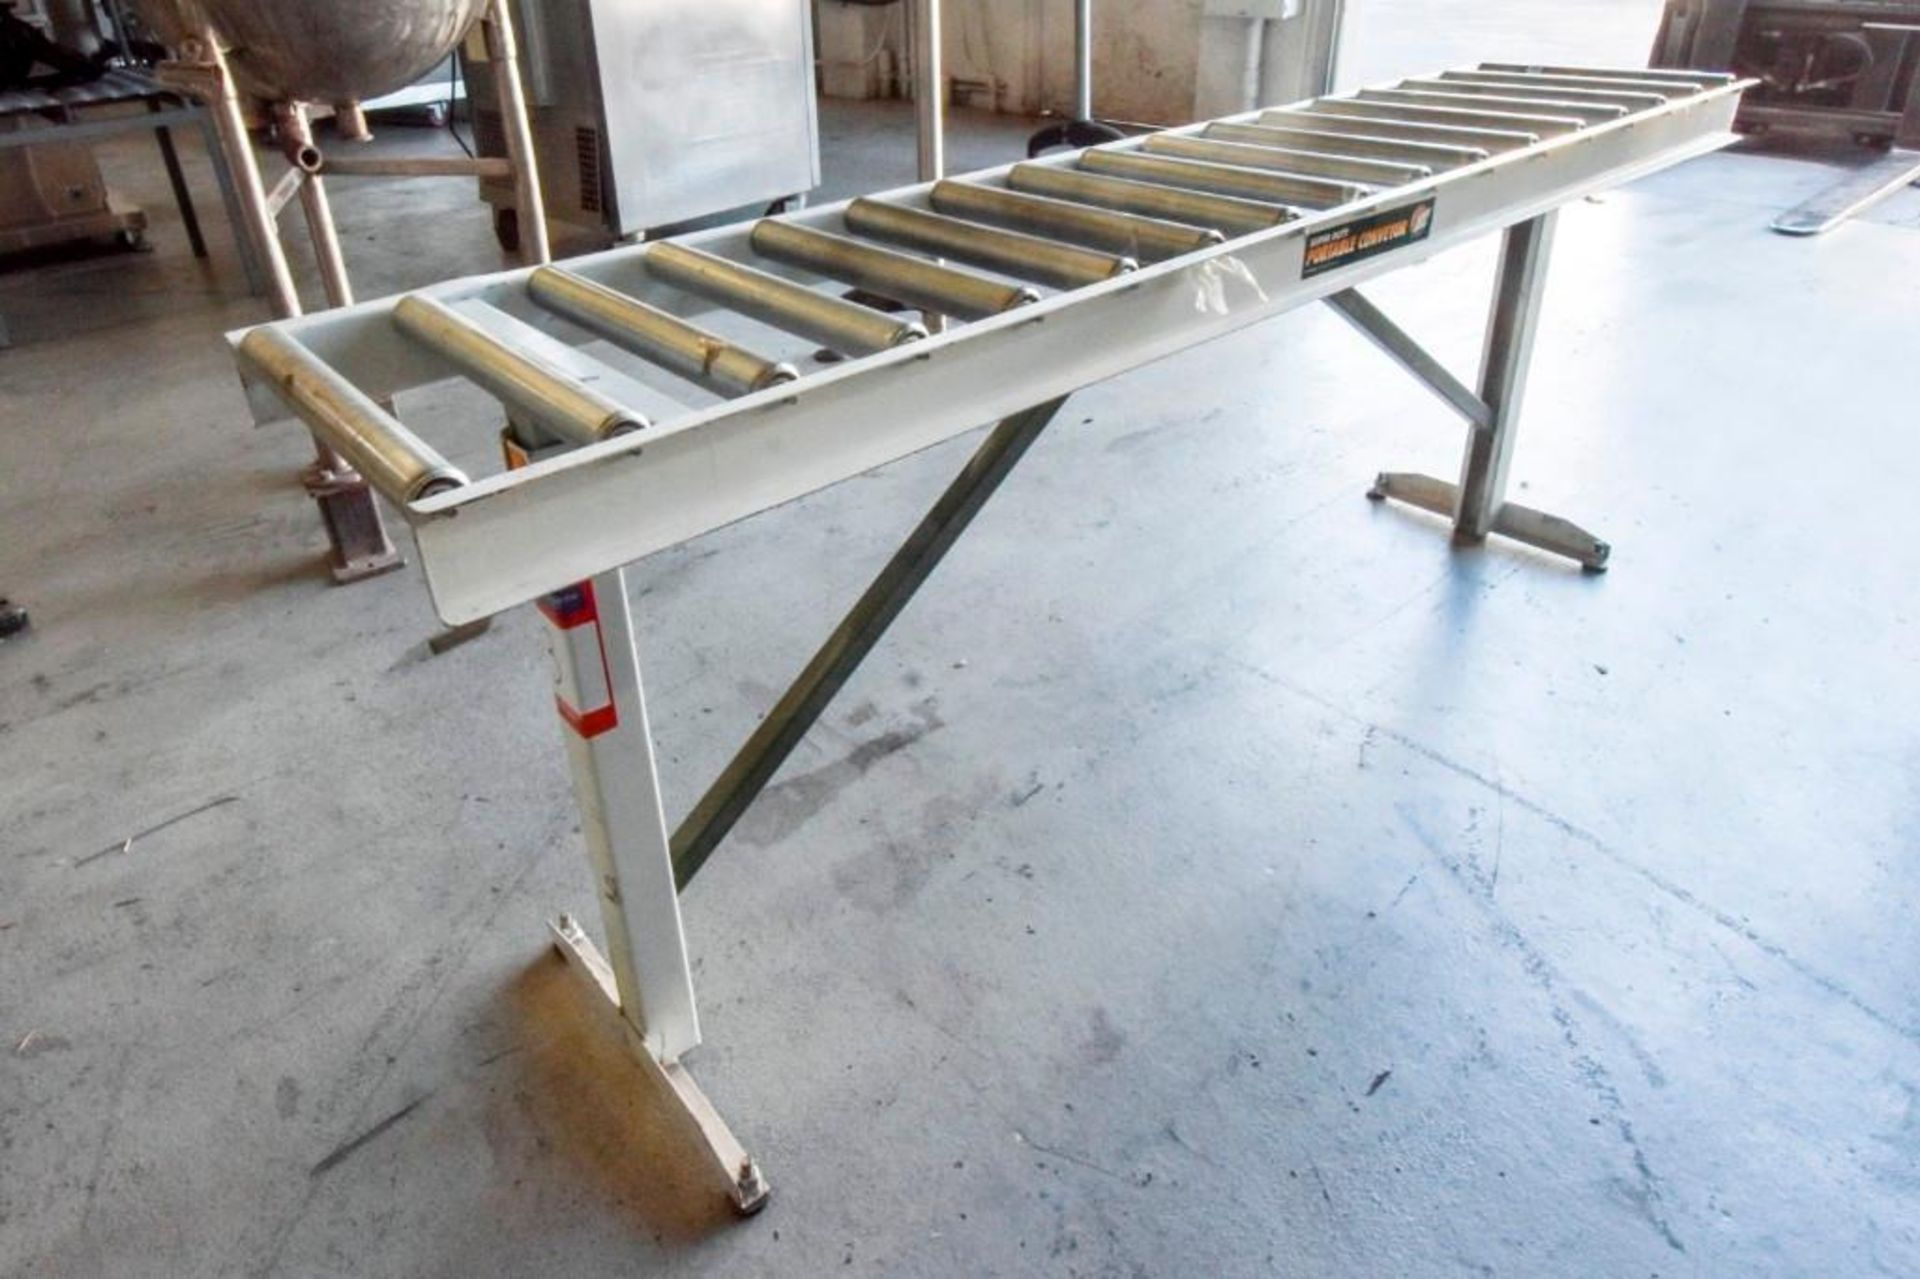 Super Duty Portable Folding Roller Conveyor 5'7'' - Image 6 of 11